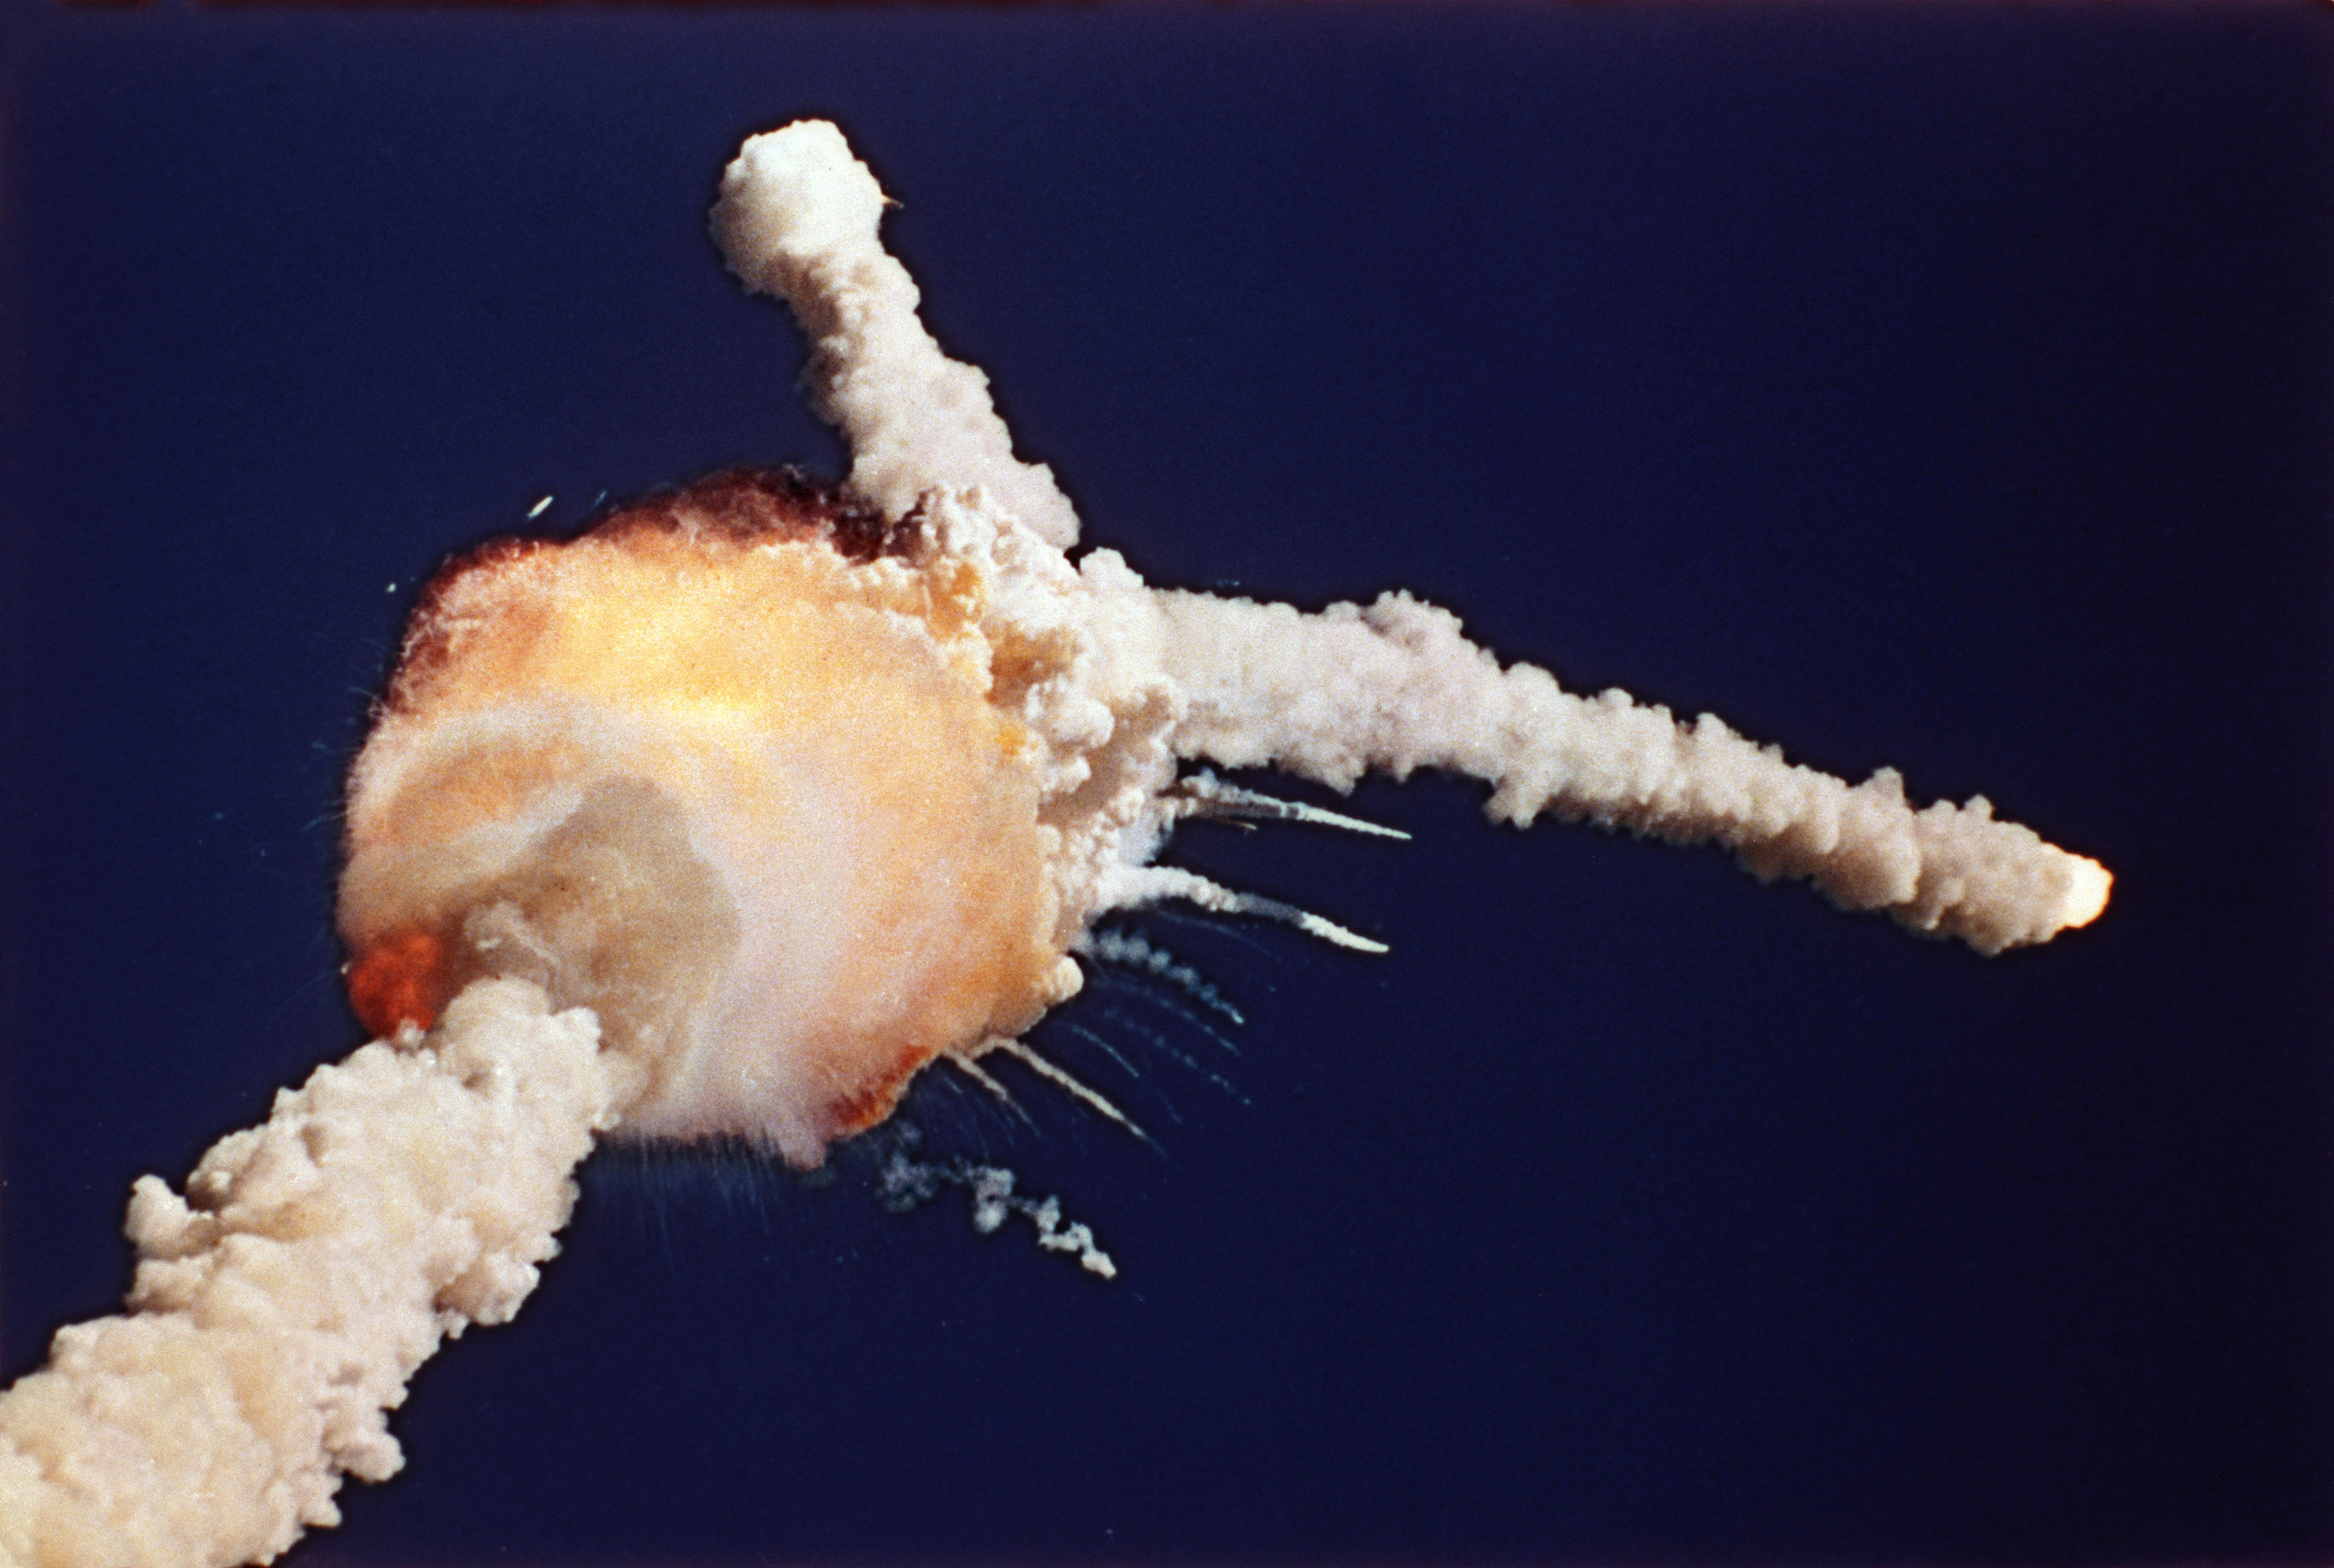 The Space Shuttle Challenger explodes shortly after lifting off from Kennedy Space Center, Fla., Tuesday, Jan. 28, 1986. All seven crew members died in the explosion, which was blamed on faulty o-rings in the shuttle's booster rockets. The Challenger's crew was honored with burials at Arlington National Cemetery. (AP Photo/Bruce Weaver)